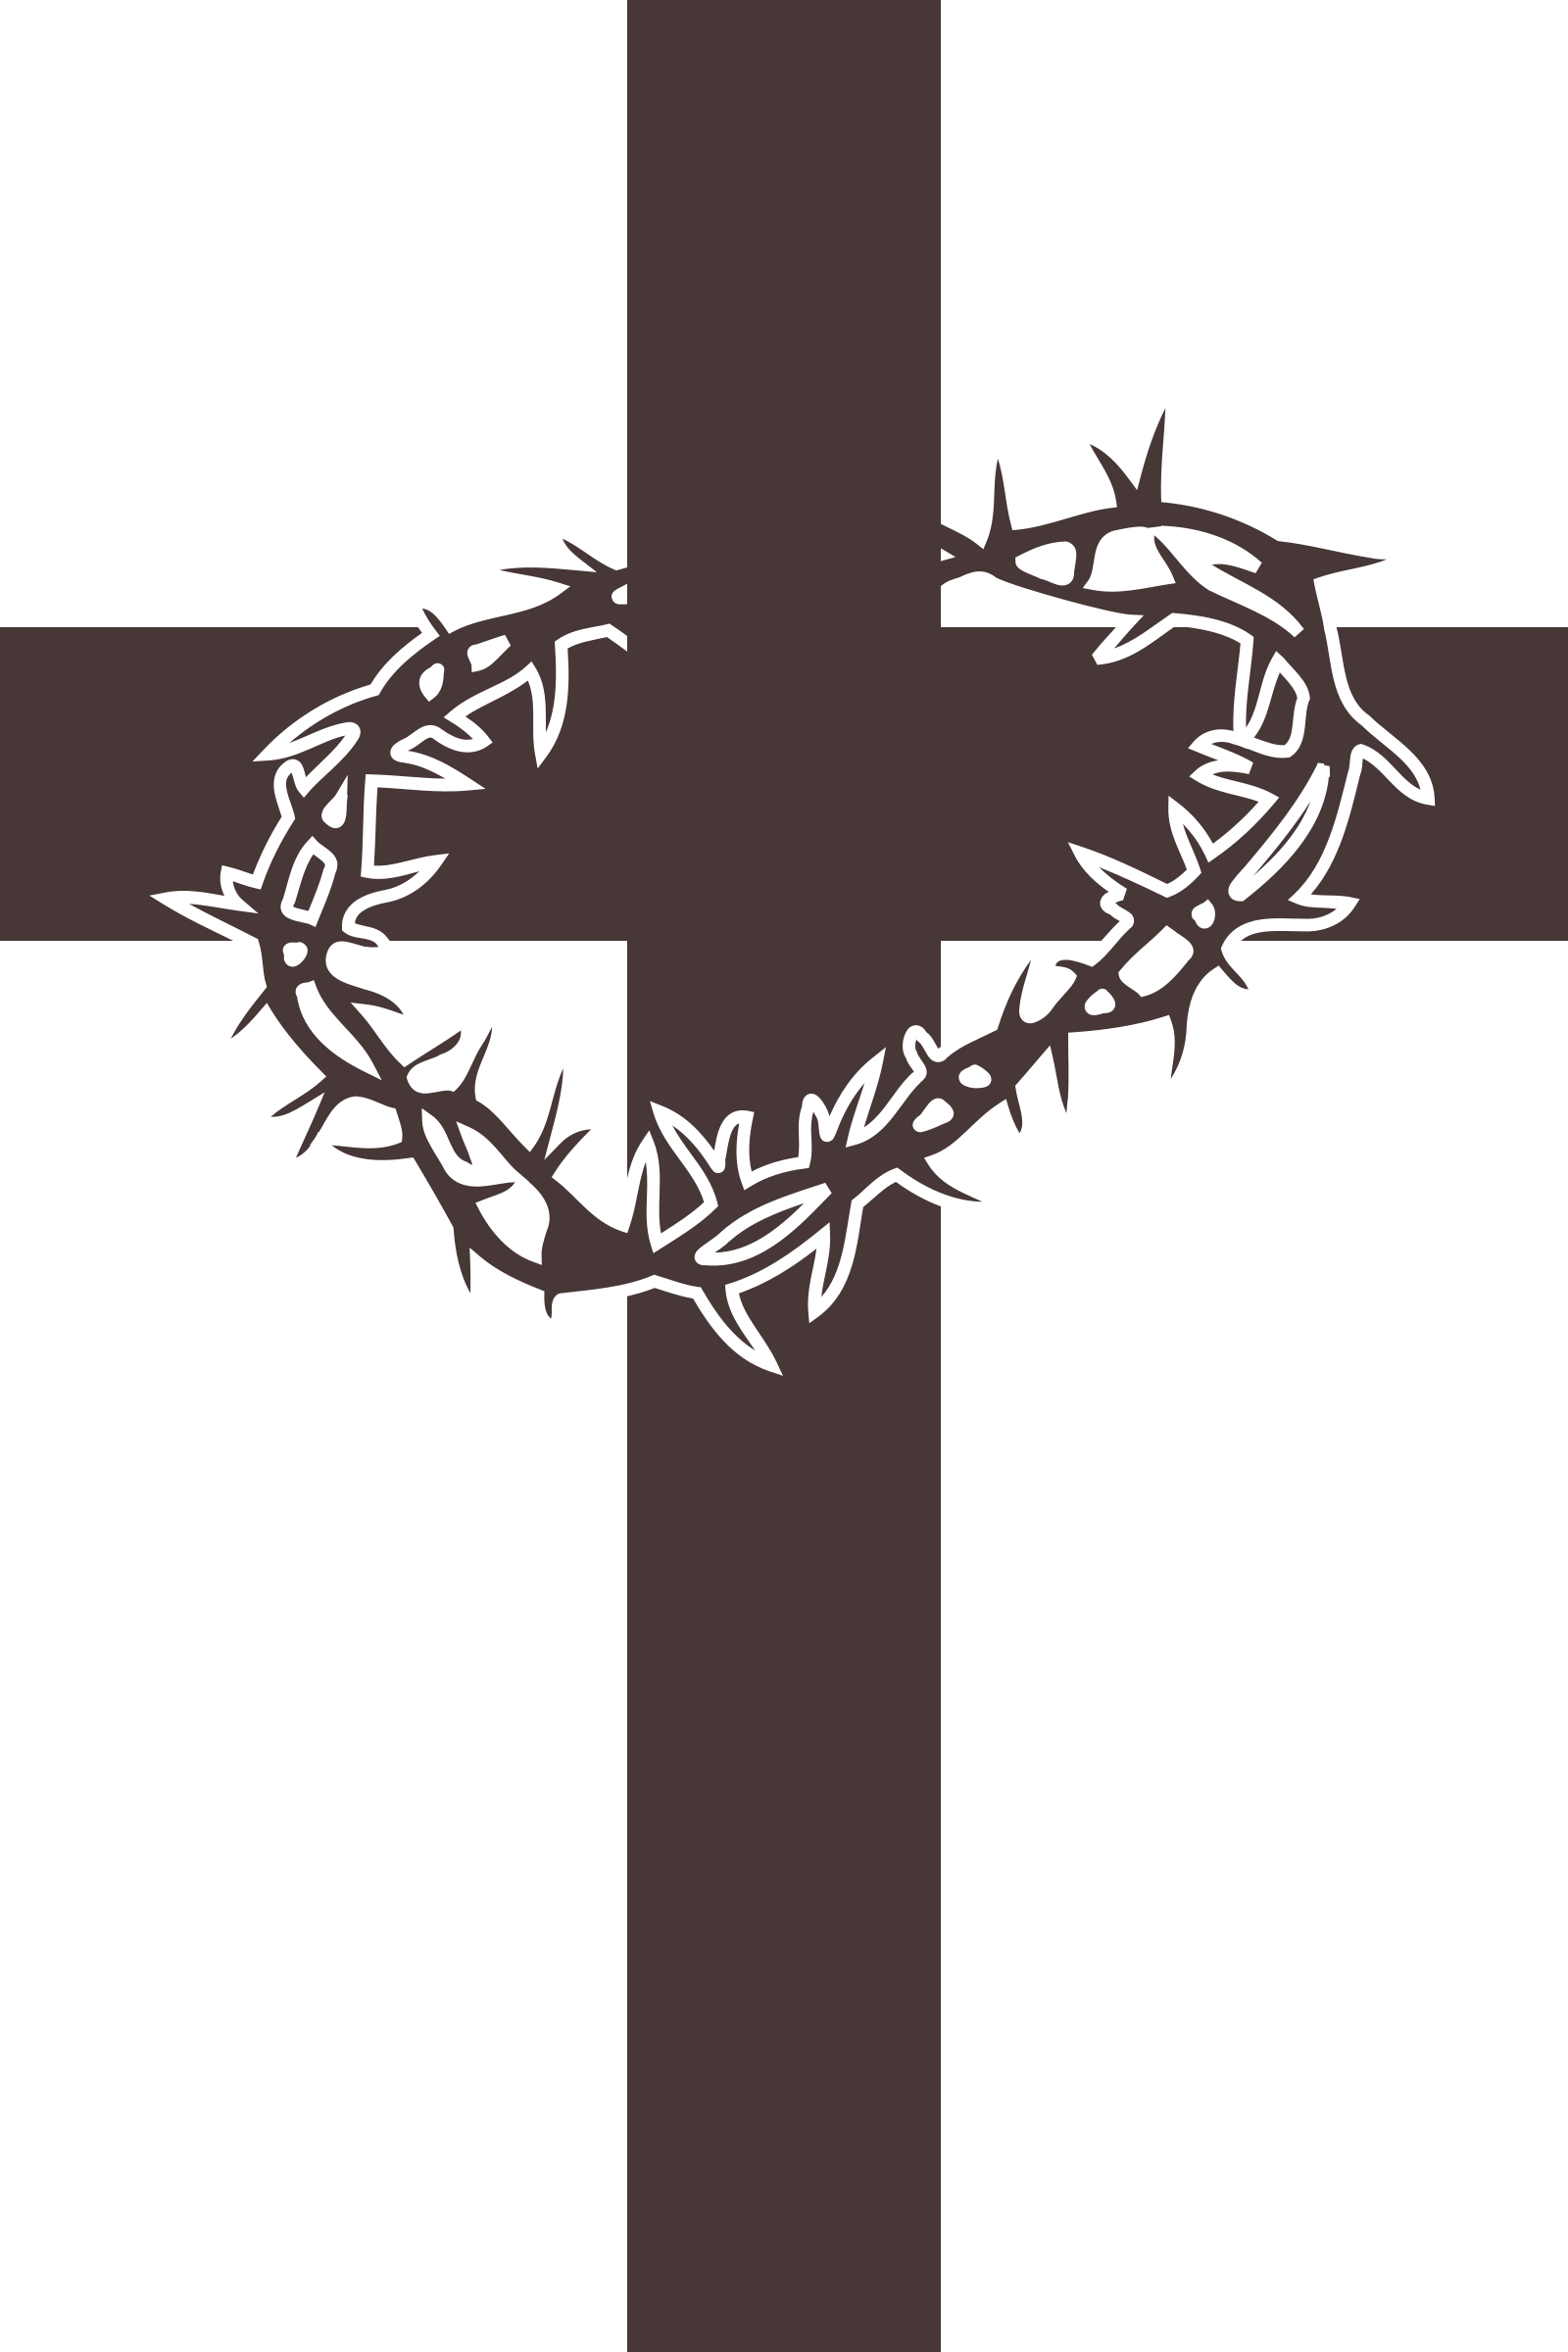 Lent cross with crown of thorns clipart image royalty free stock Free Thorn Crown Cliparts, Download Free Clip Art, Free Clip Art on ... image royalty free stock